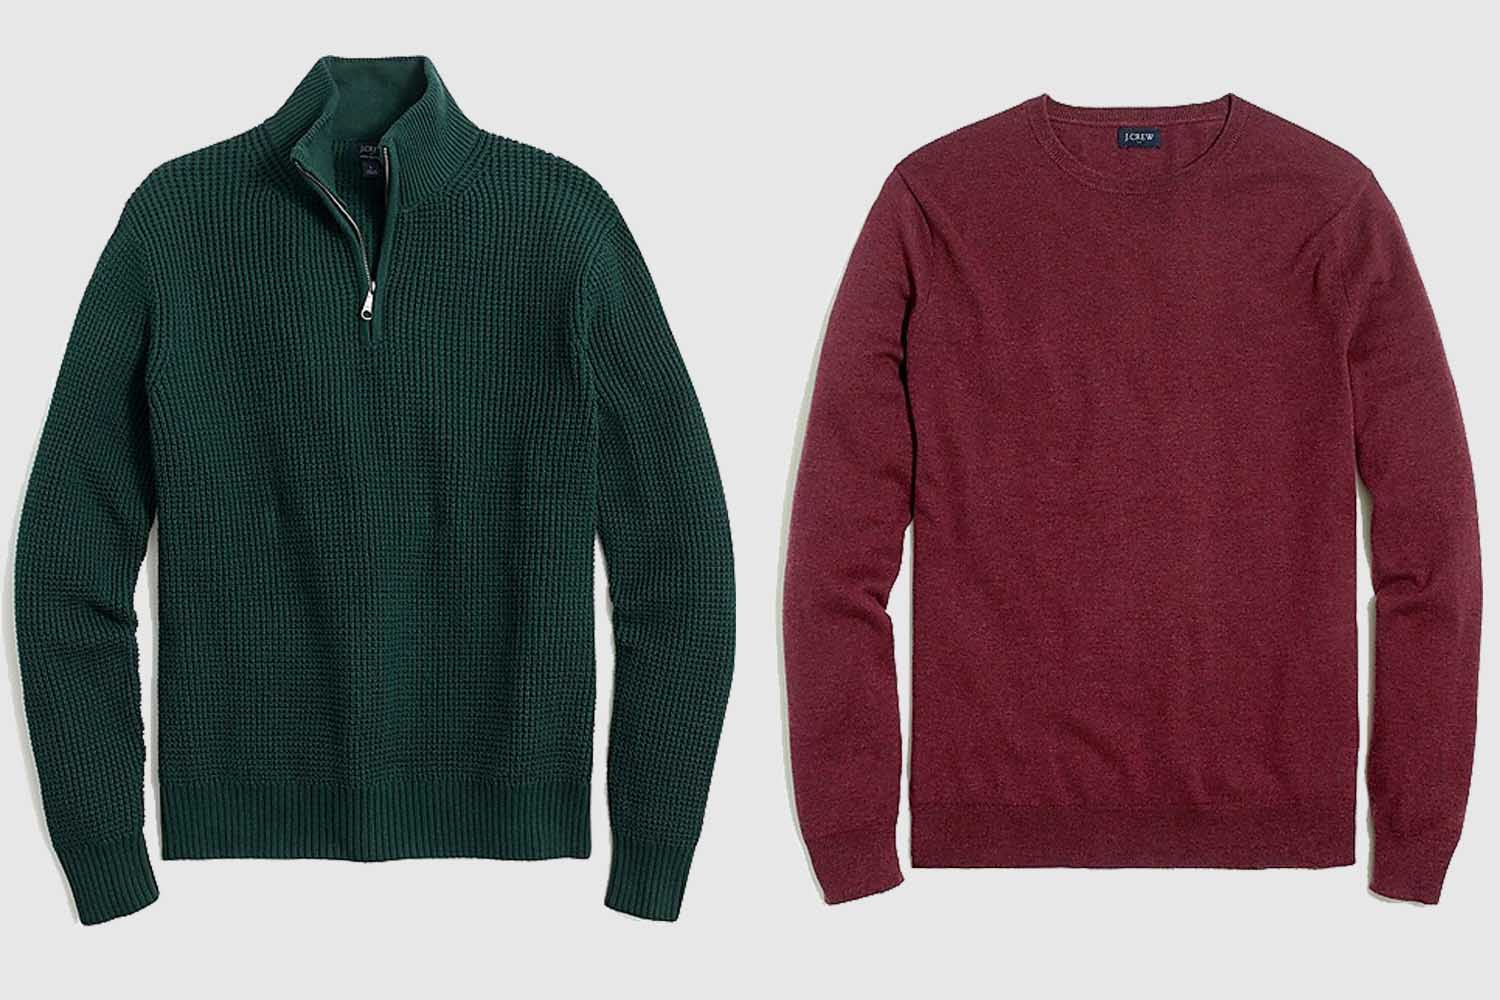 Deal: Take an Additional 20% Off Discounted Holiday Party Fits at J.Crew Factory